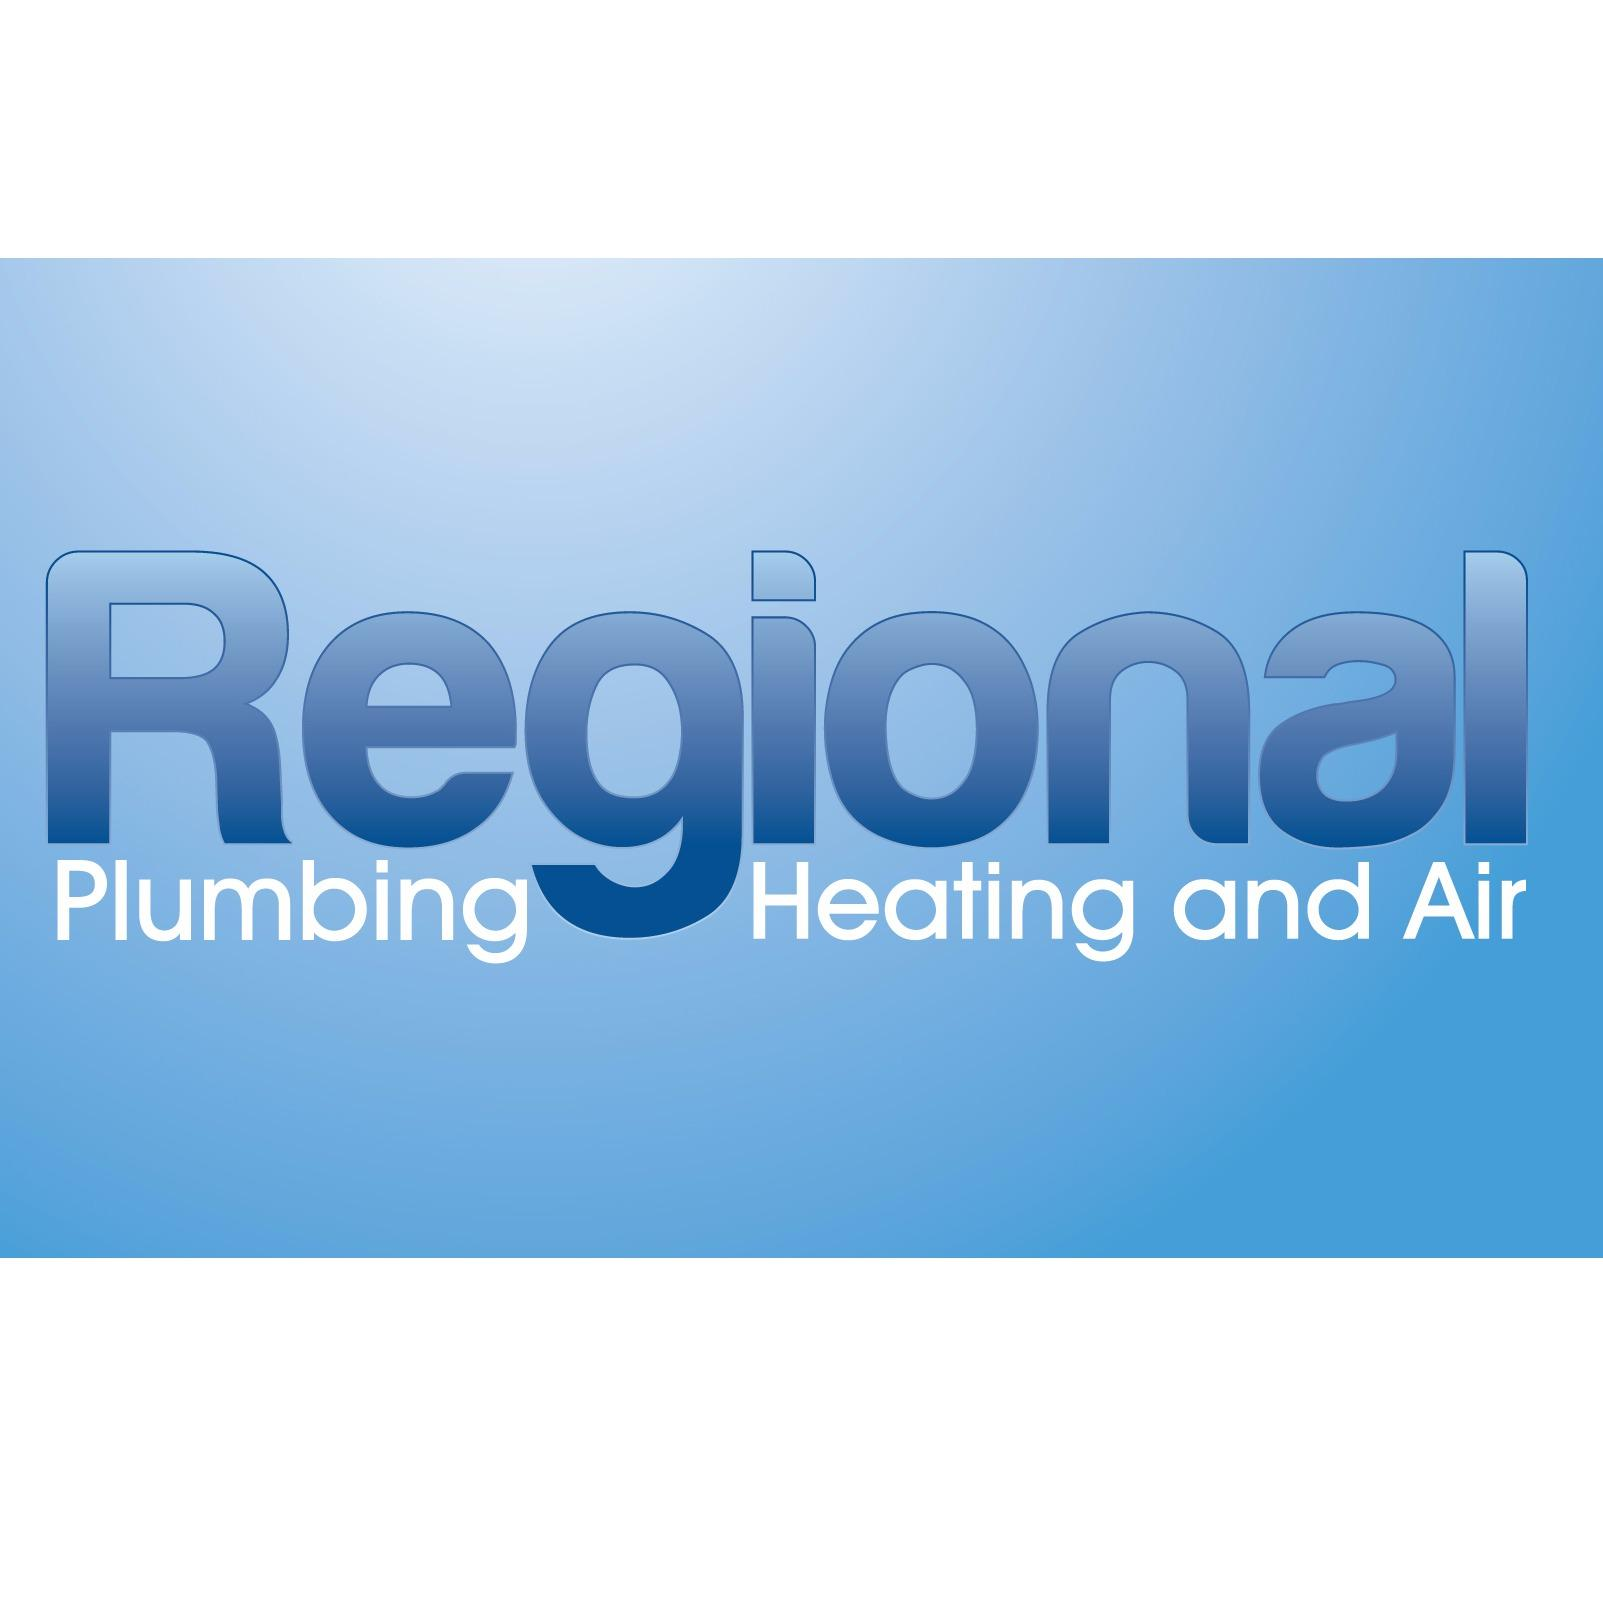 Regional Plumbing, Heating and Air